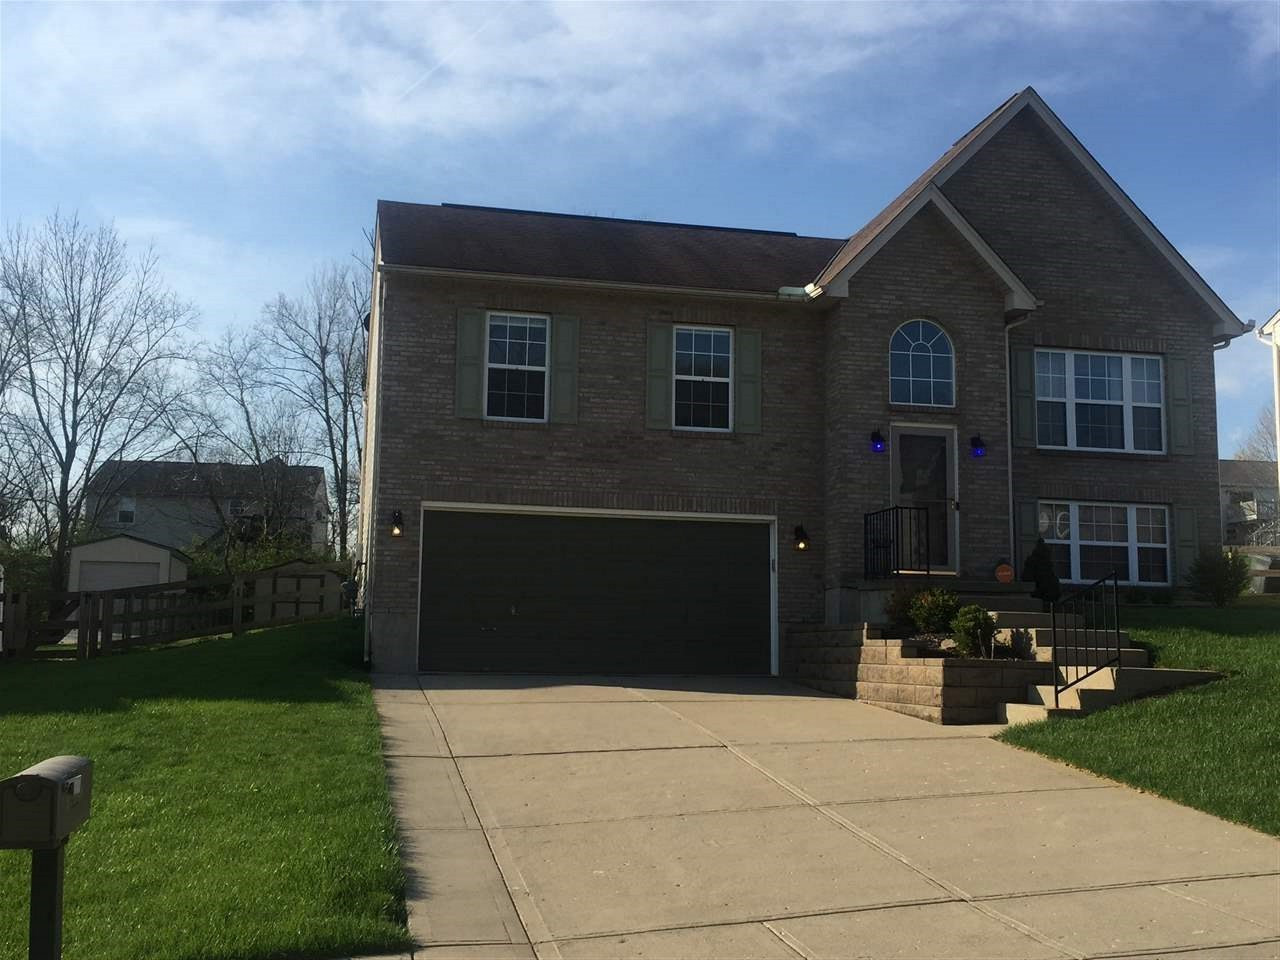 Photo 1 for 1099 Amblewood Dr. Independence, KY 41051